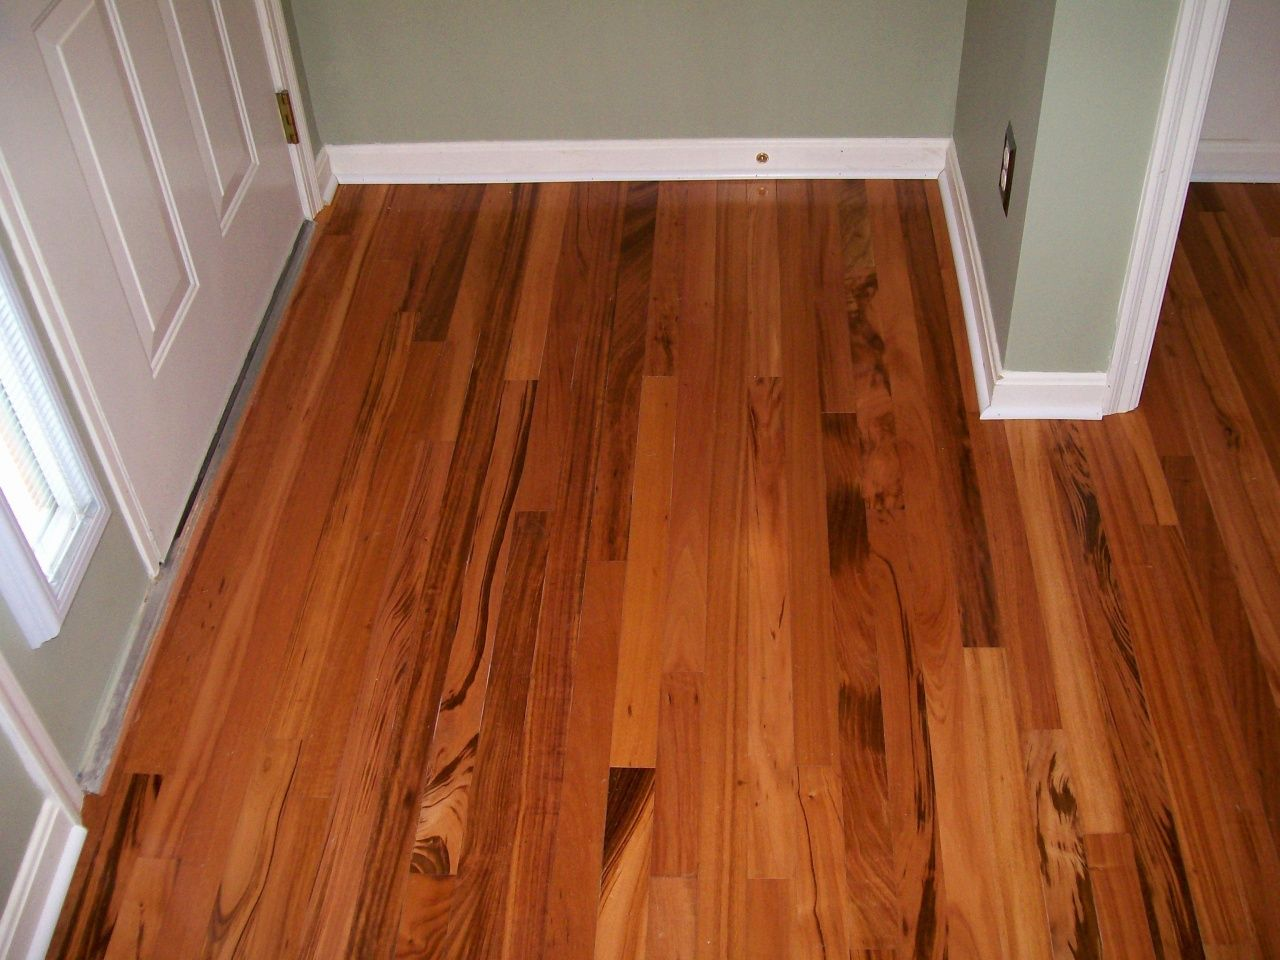 Peel and Stick Flooring Lowes in 2020 Flooring cost